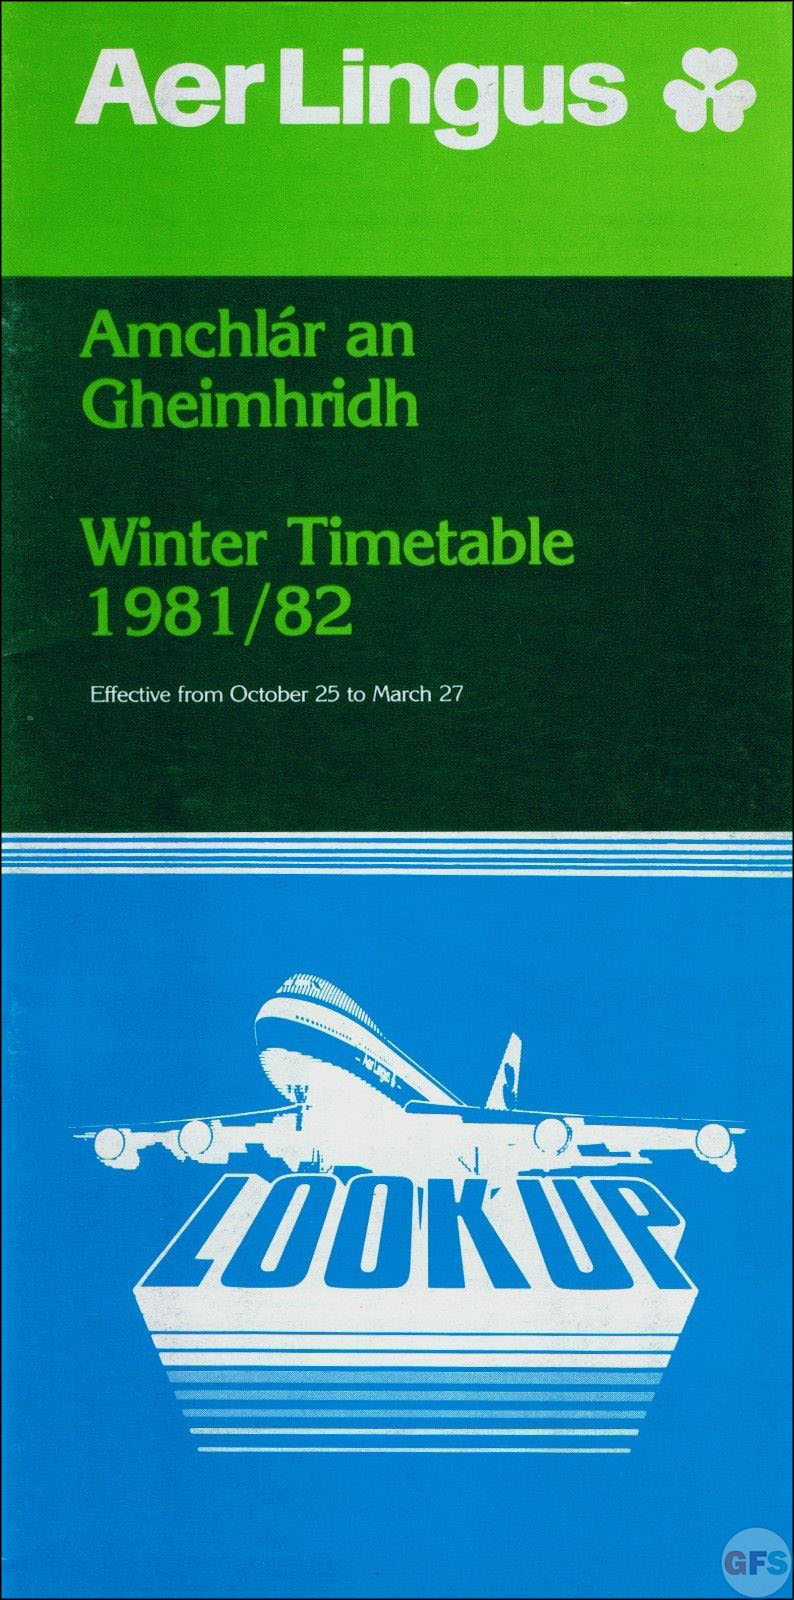 1981-82 Aer Lingus airline timetable